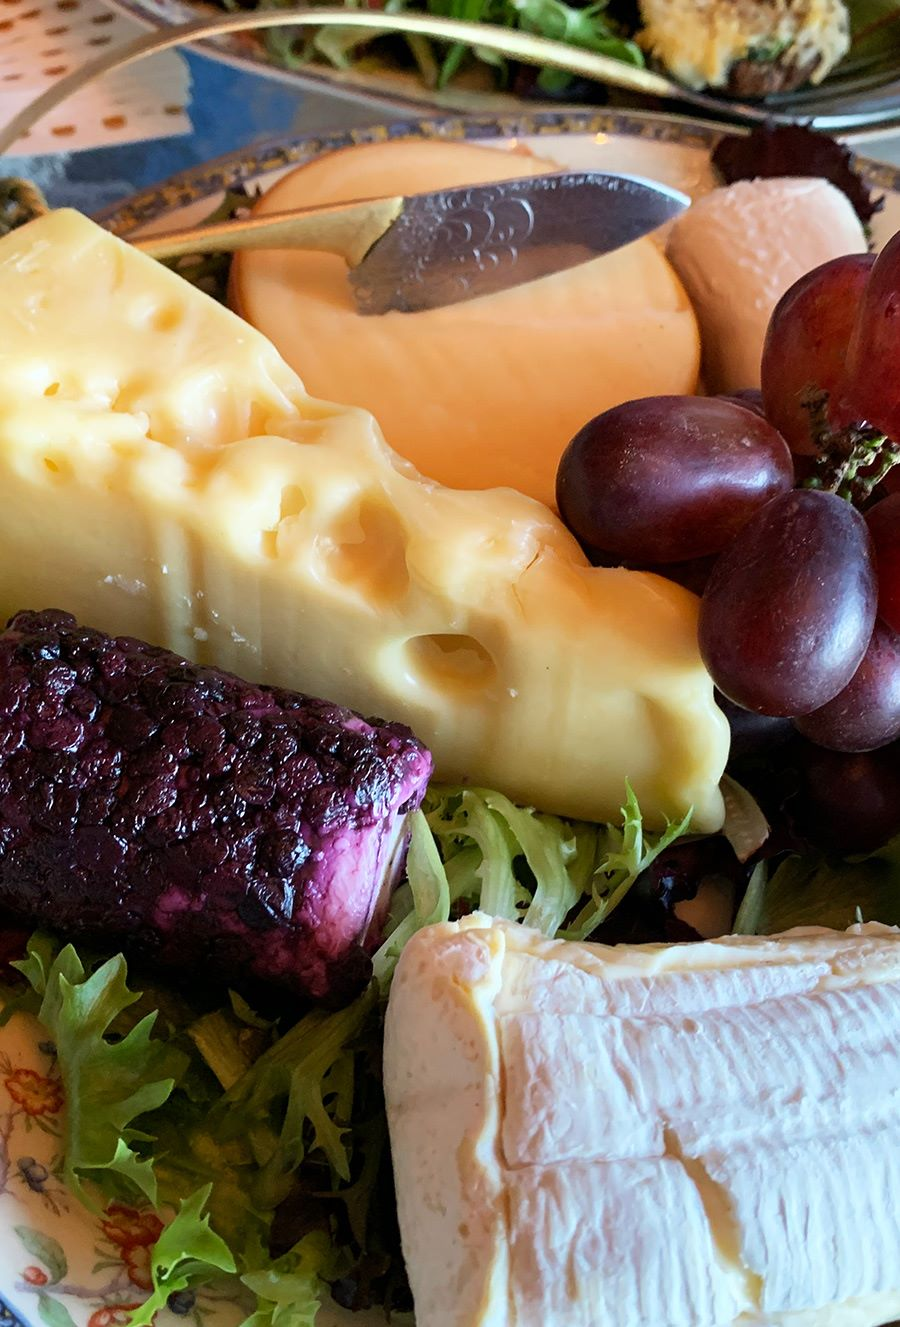 Gourmet Cheese and Fruit Plate